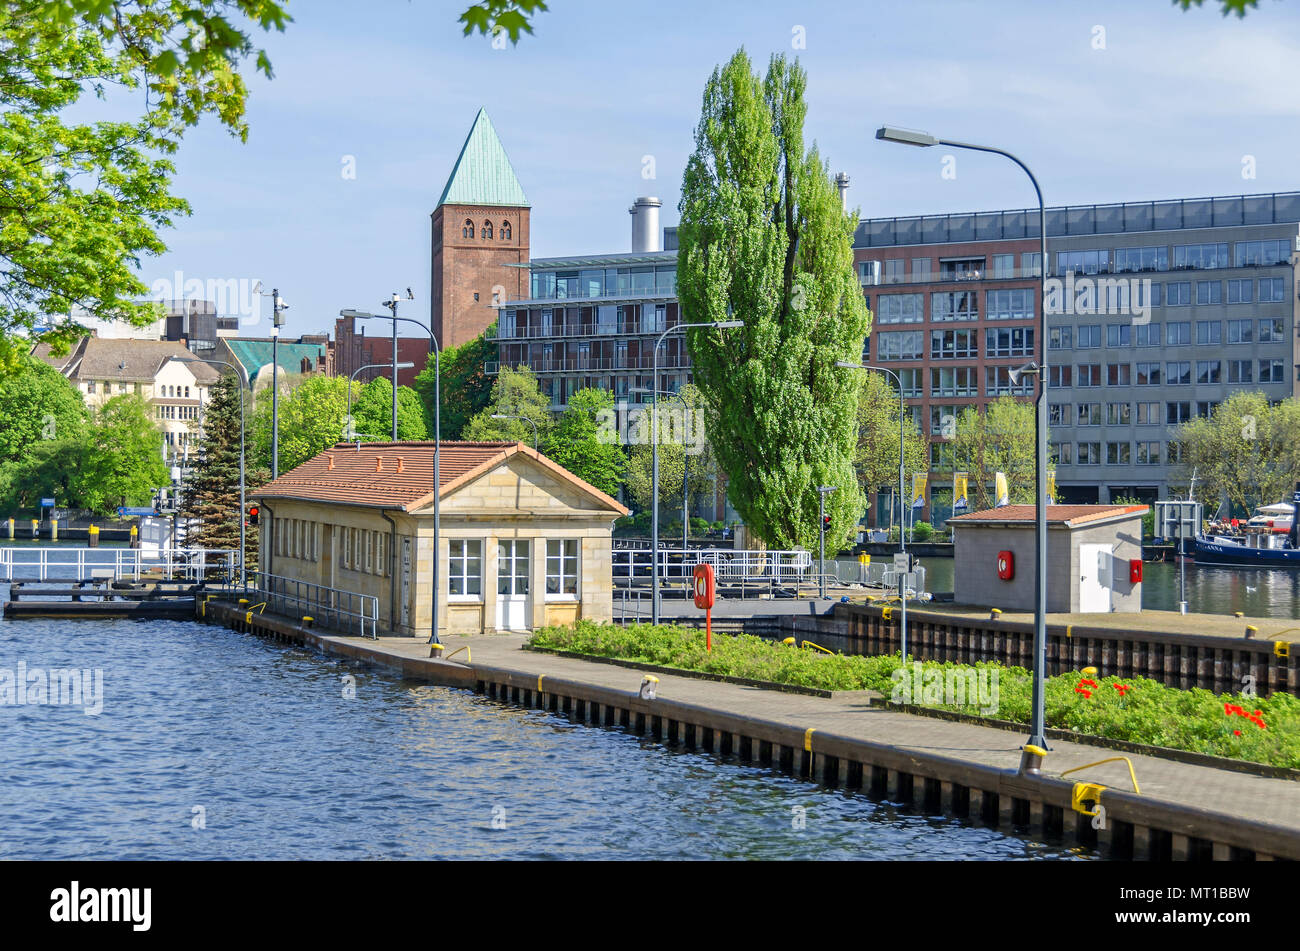 Multi-chamber Muehlendamm locks in the central Mitte district of Berlin making the river Spree navigable, and the tower of the Marcher Museum Stock Photo